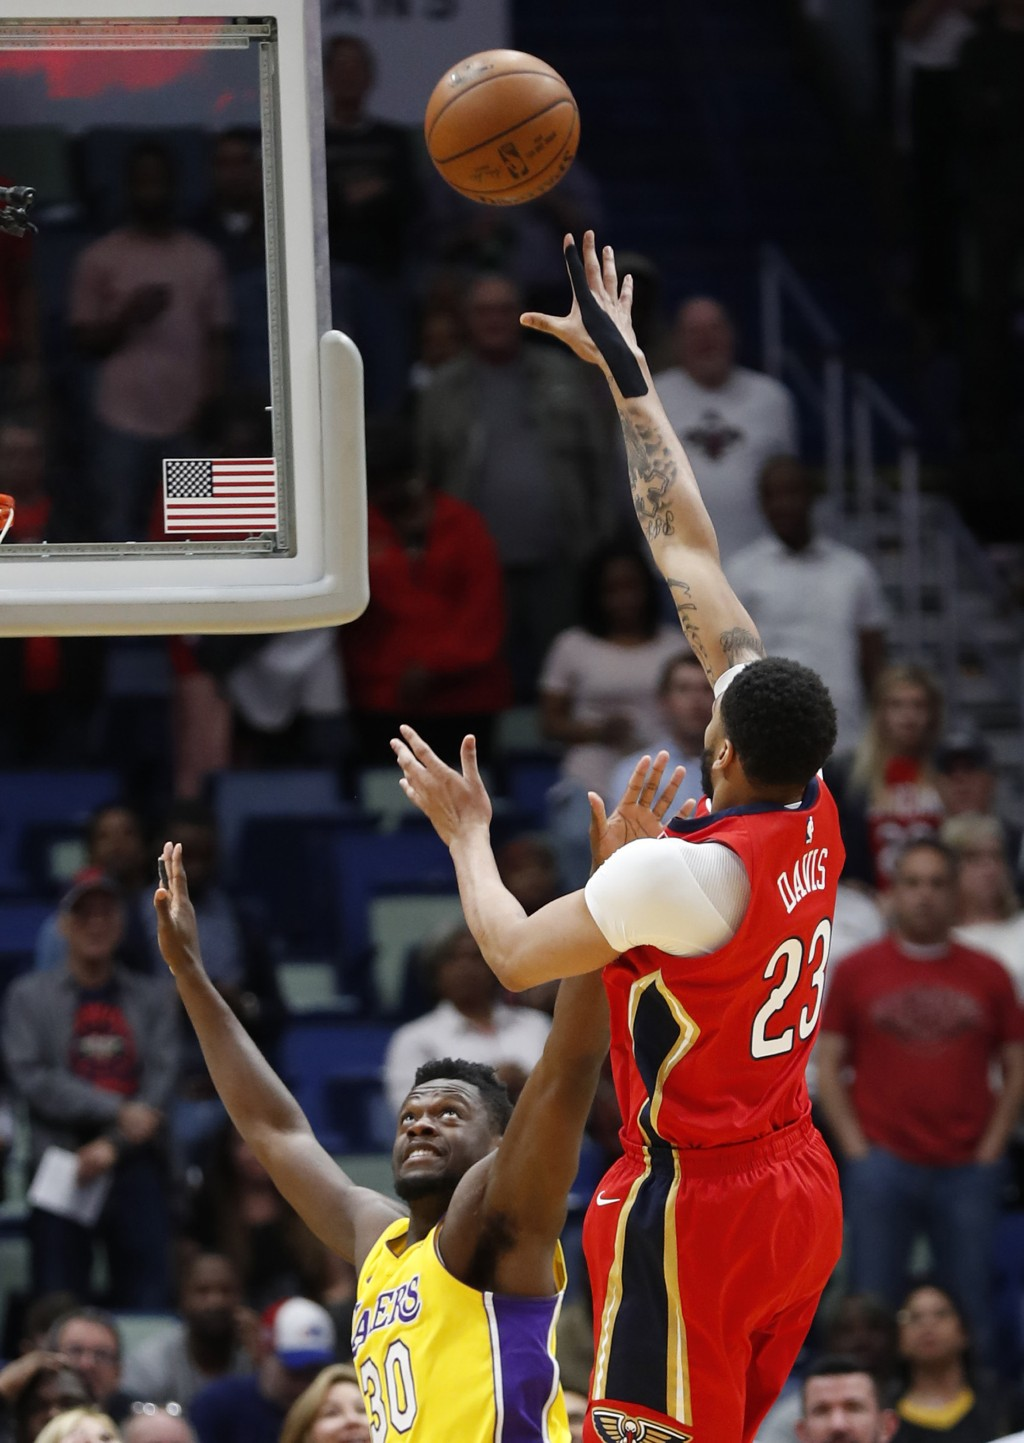 New Orleans Pelicans forward Anthony Davis (23) shoots over Los Angeles Lakers forward Julius Randle (30) during the first half of an NBA basketball g